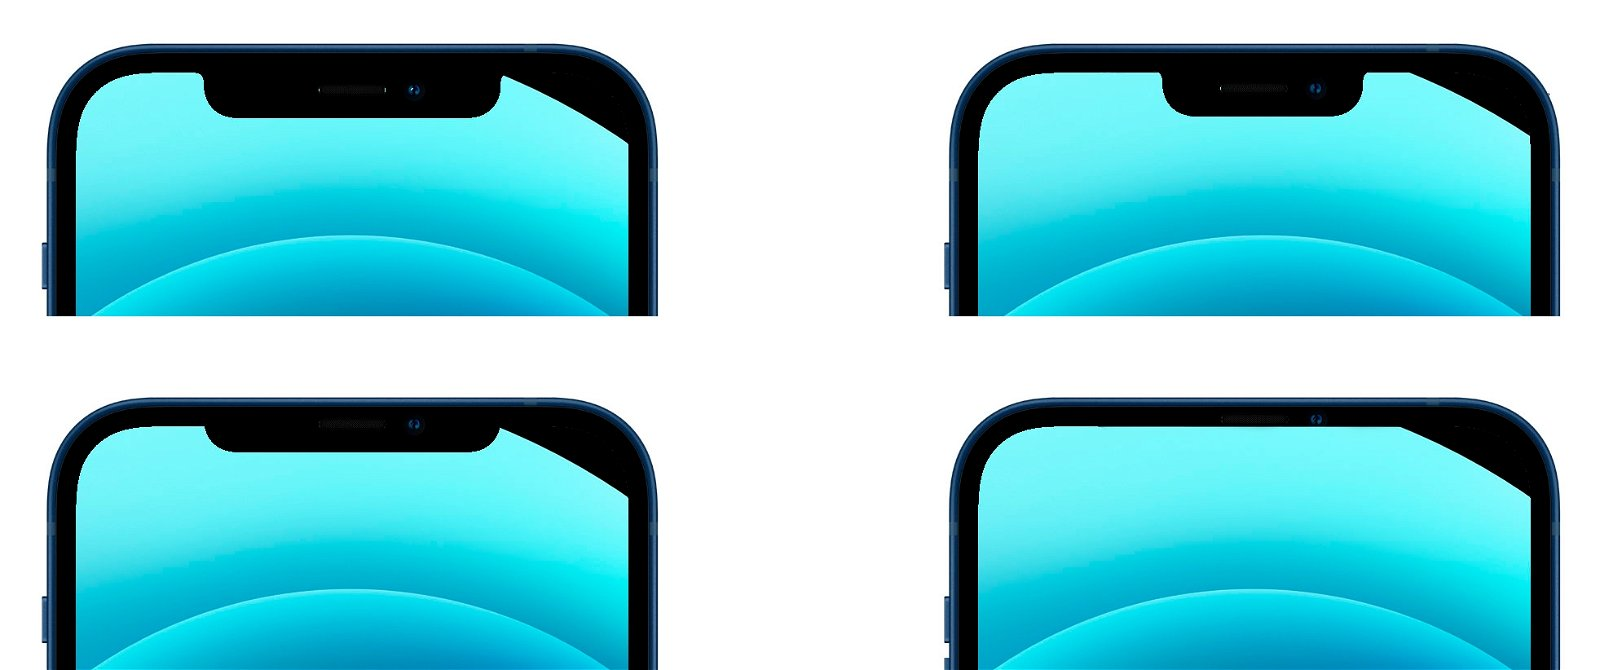 posibles notch iPhone 13